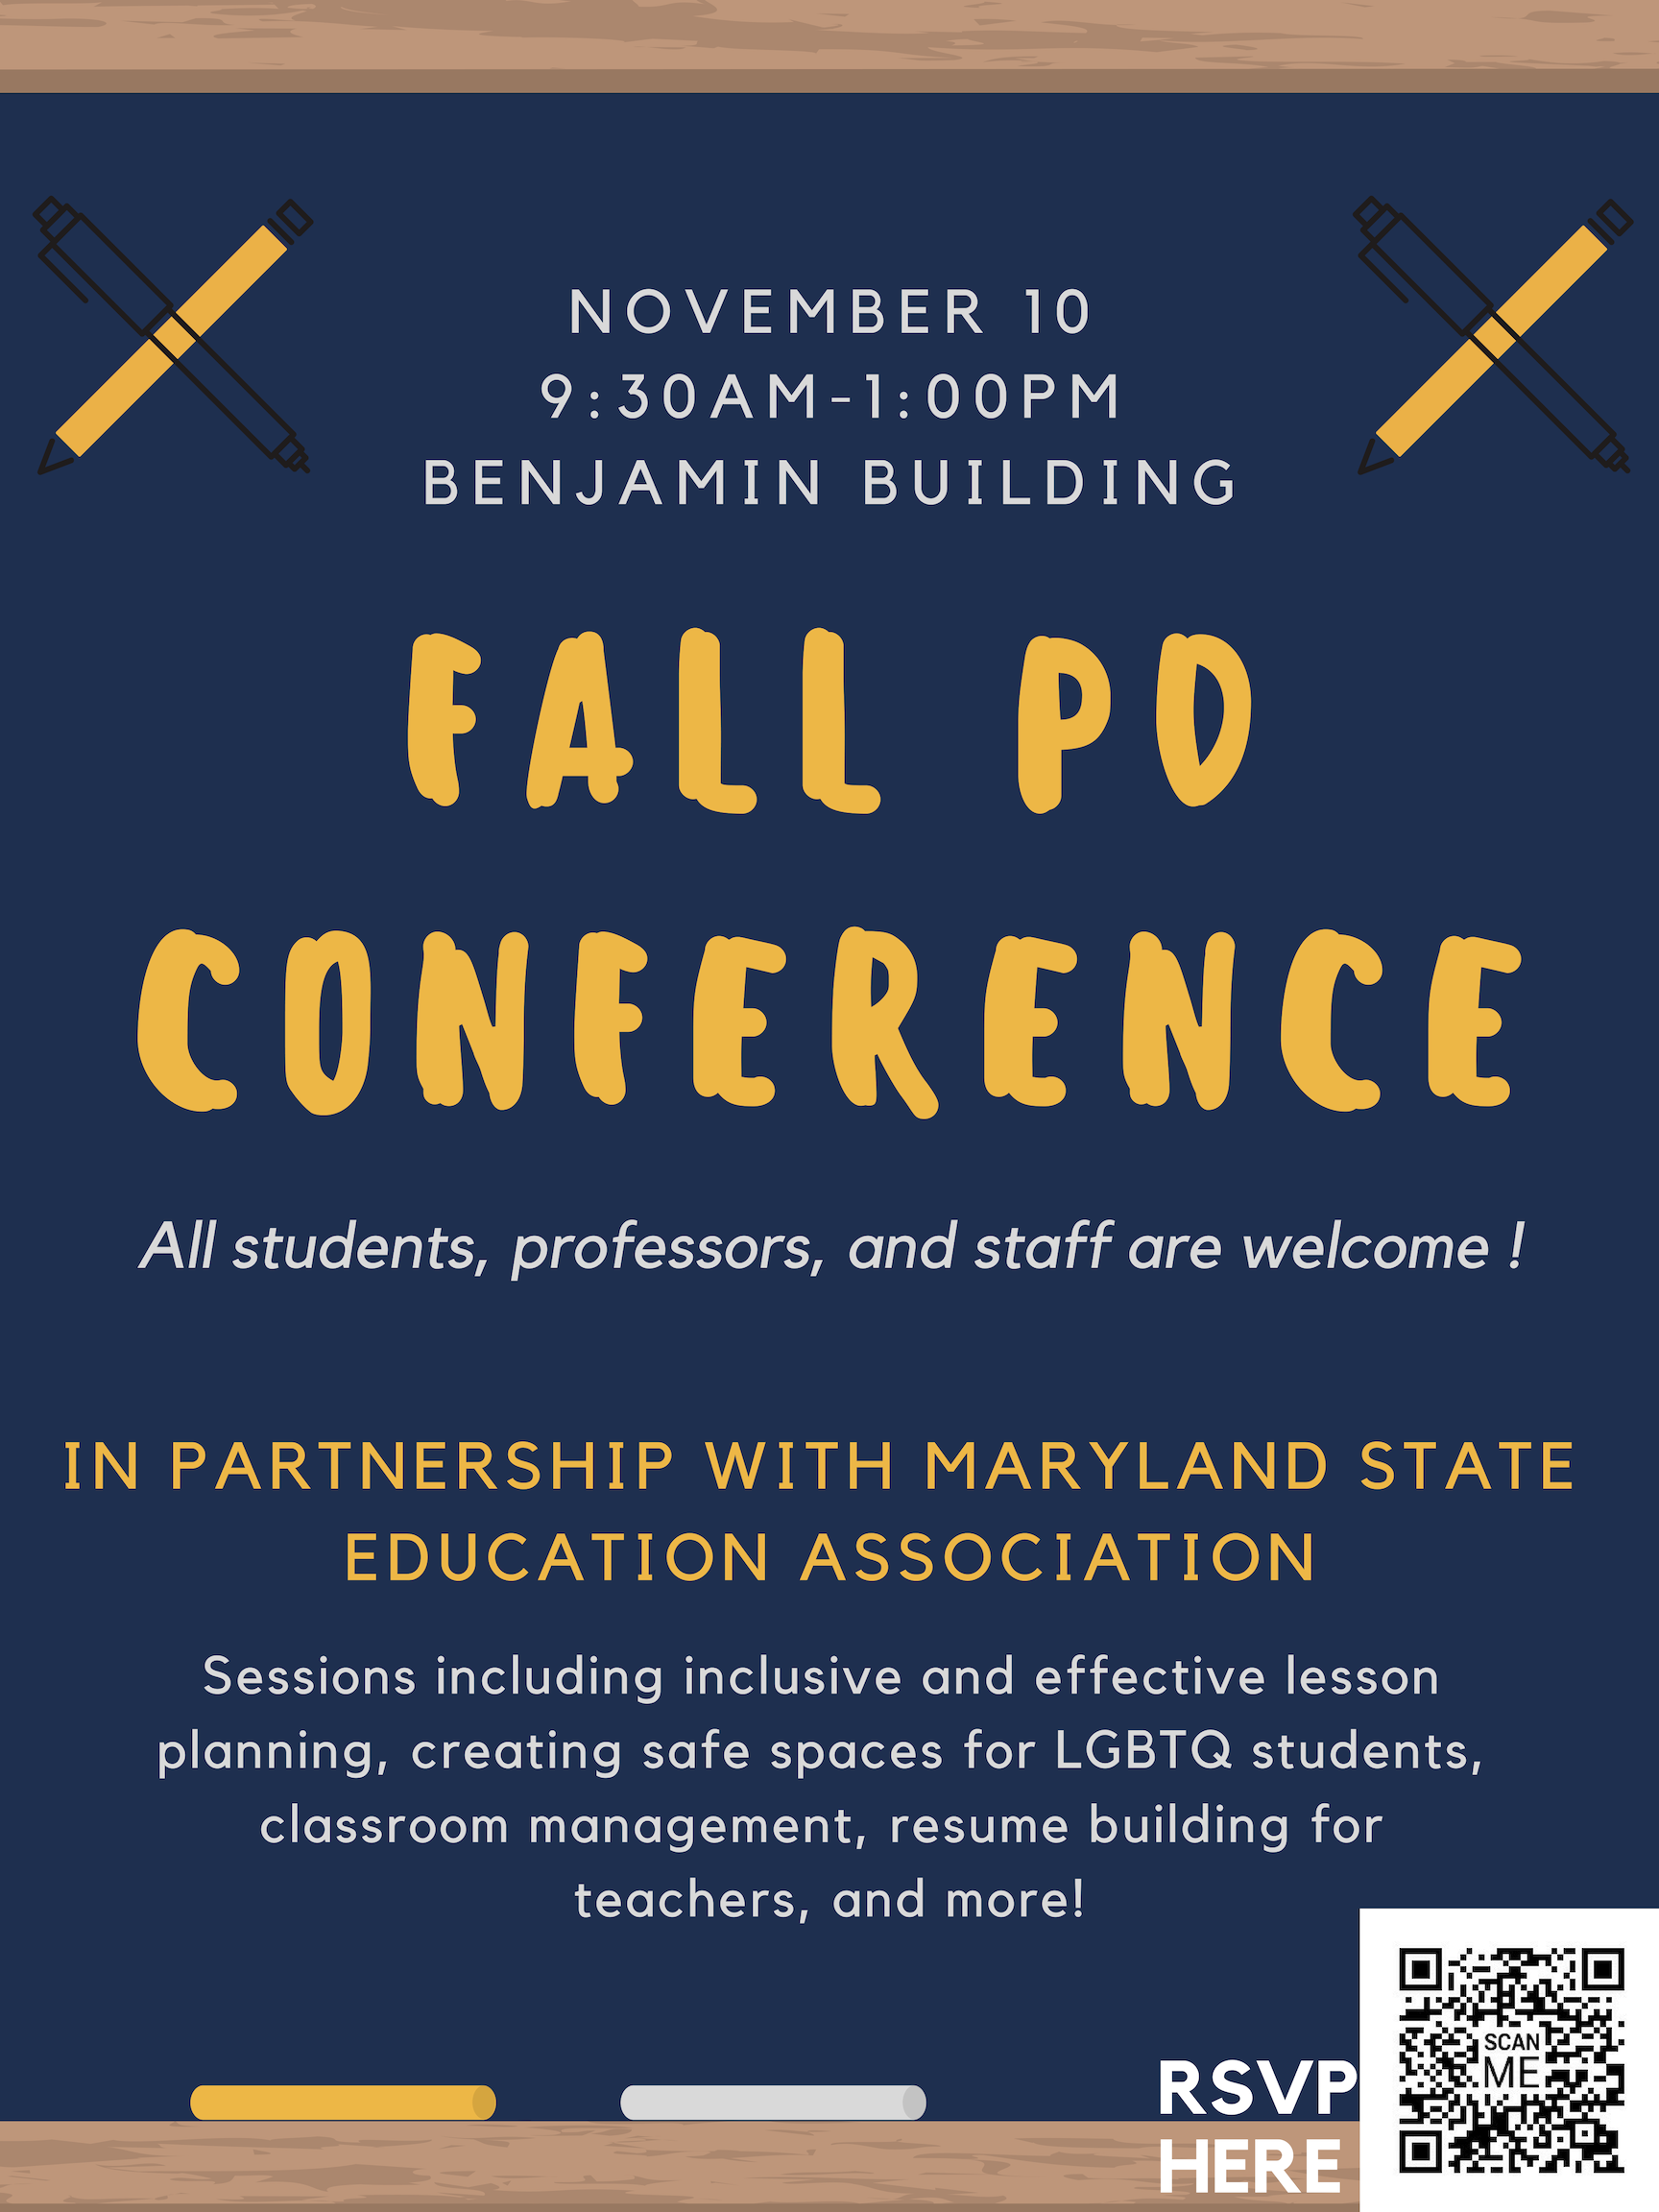 Fall PD Conference